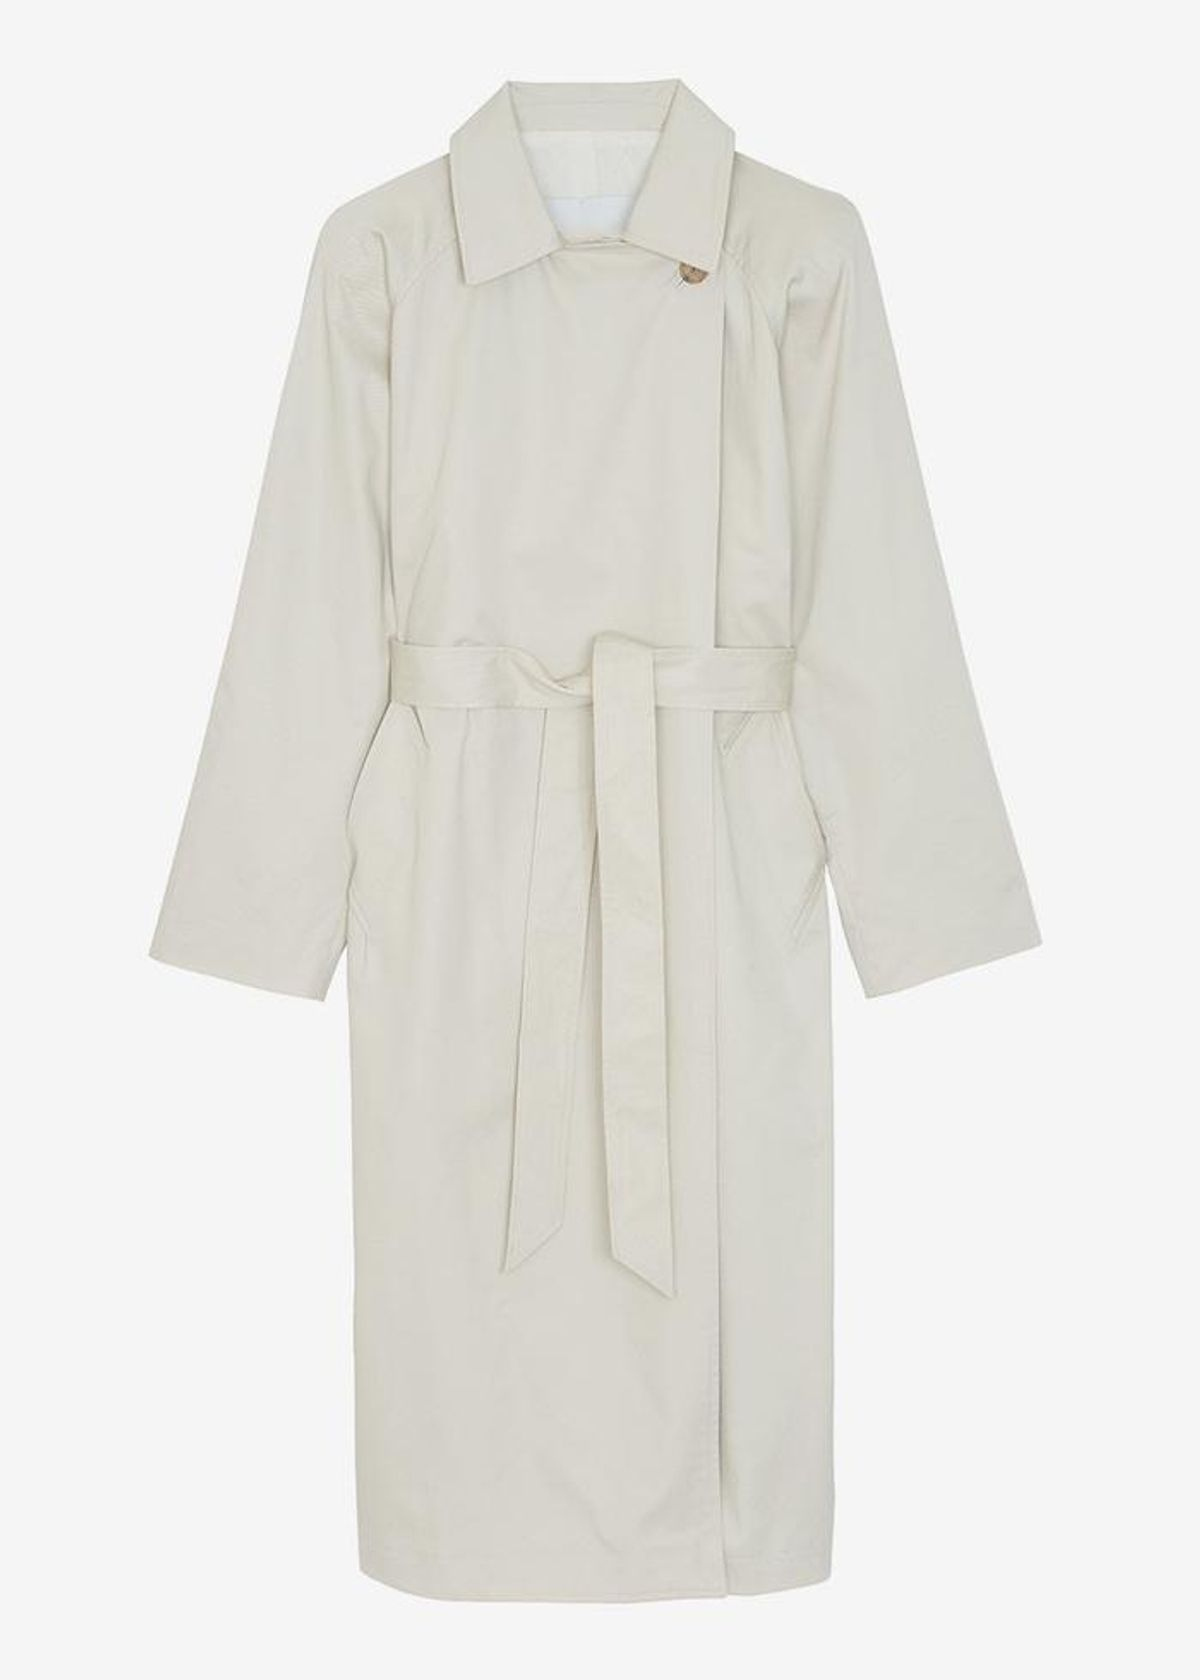 the frankie shop woven box shoulder trench